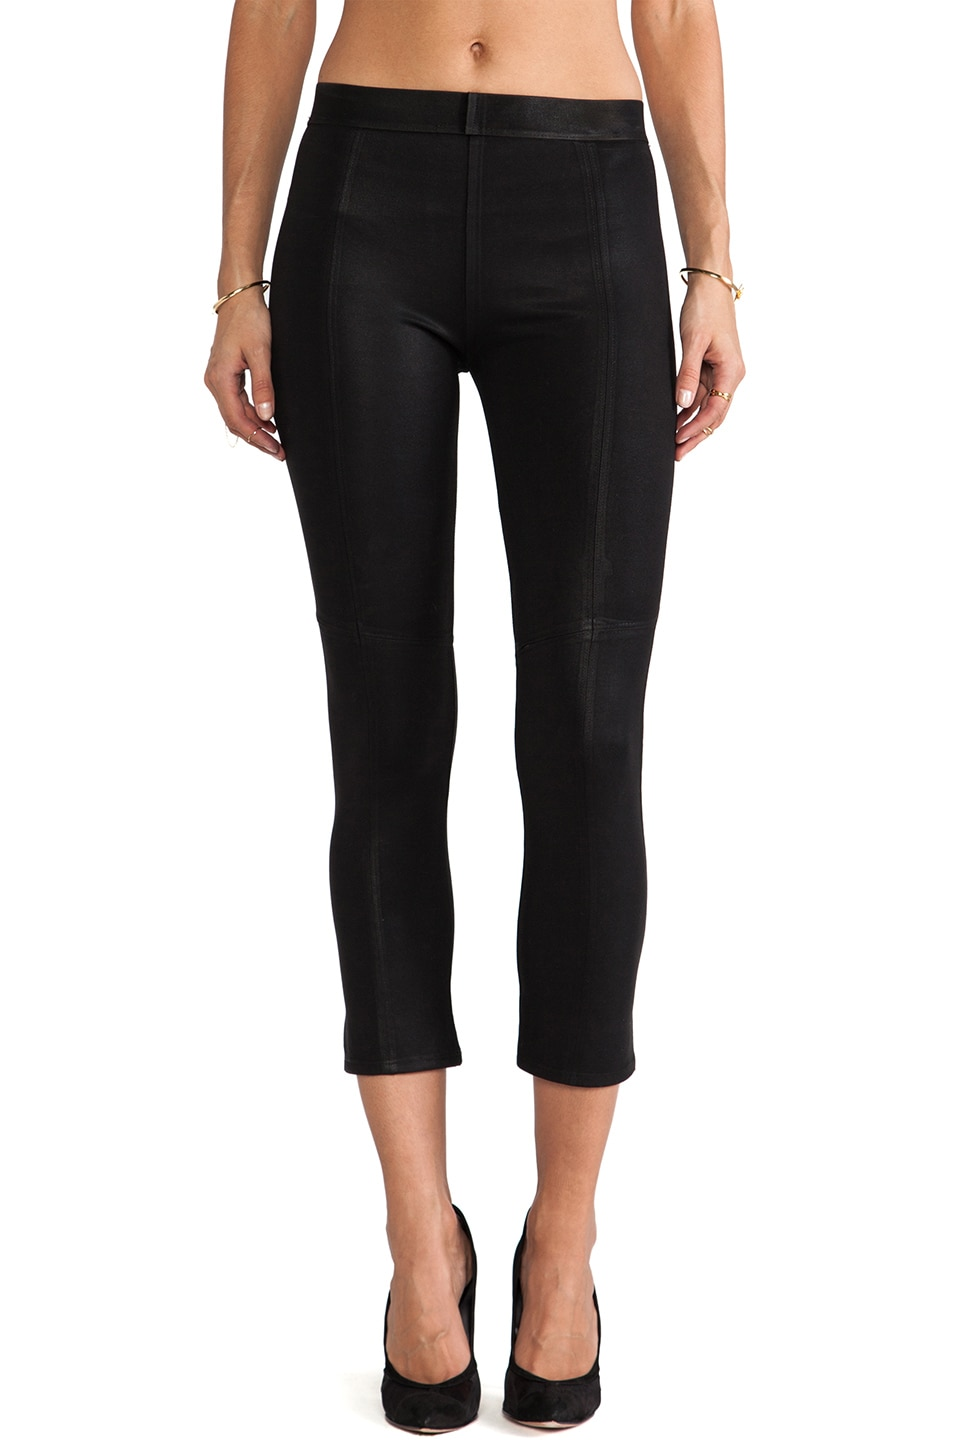 David Lerner Coated Crop Legging in Classic Black